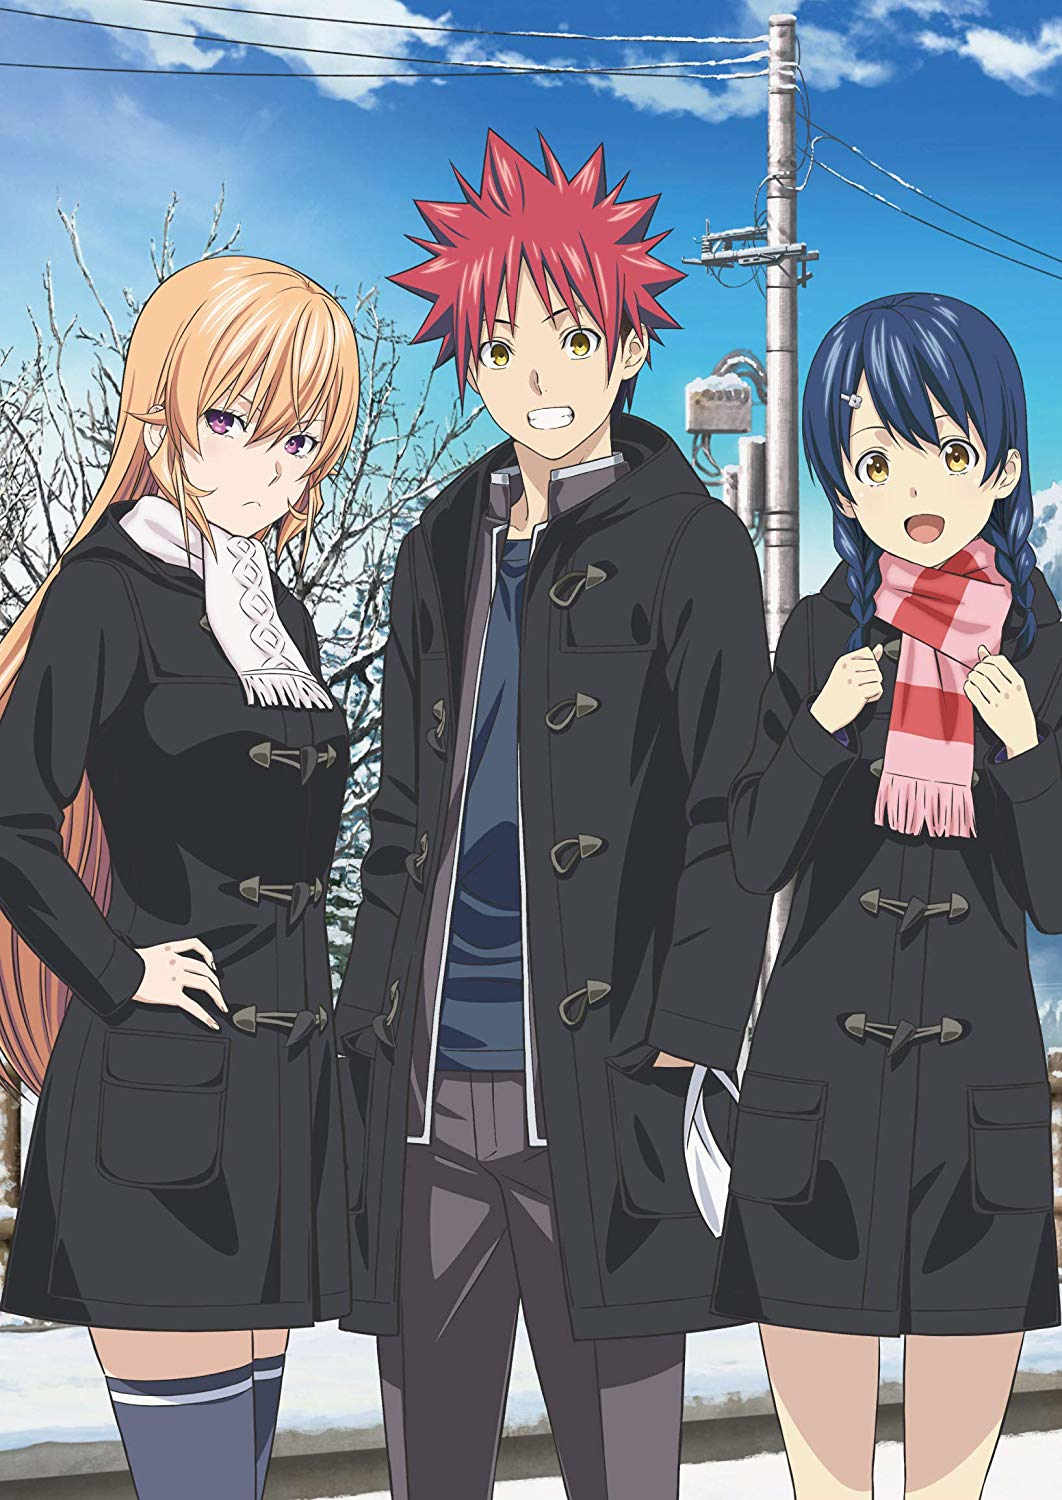 Pin on Food Wars! Shokugeki no Soma